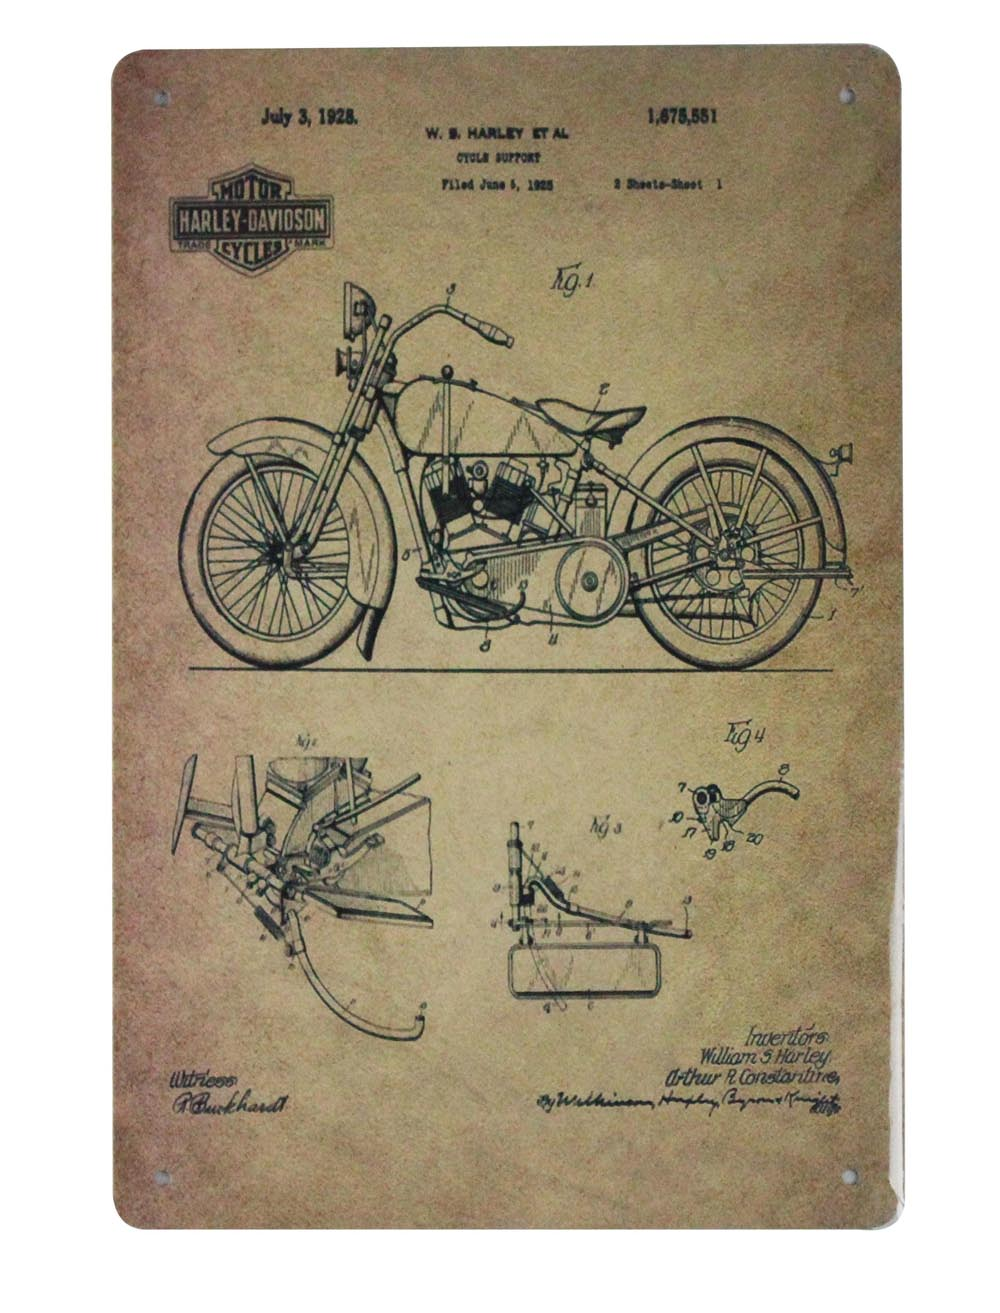 Collectibles Transportation Vintage 1923 Harley Davidson Engine Patent Motorcycle Poster Man Cave Garage Art Other Euro Motorcycle Items Lamezzamt Com Br